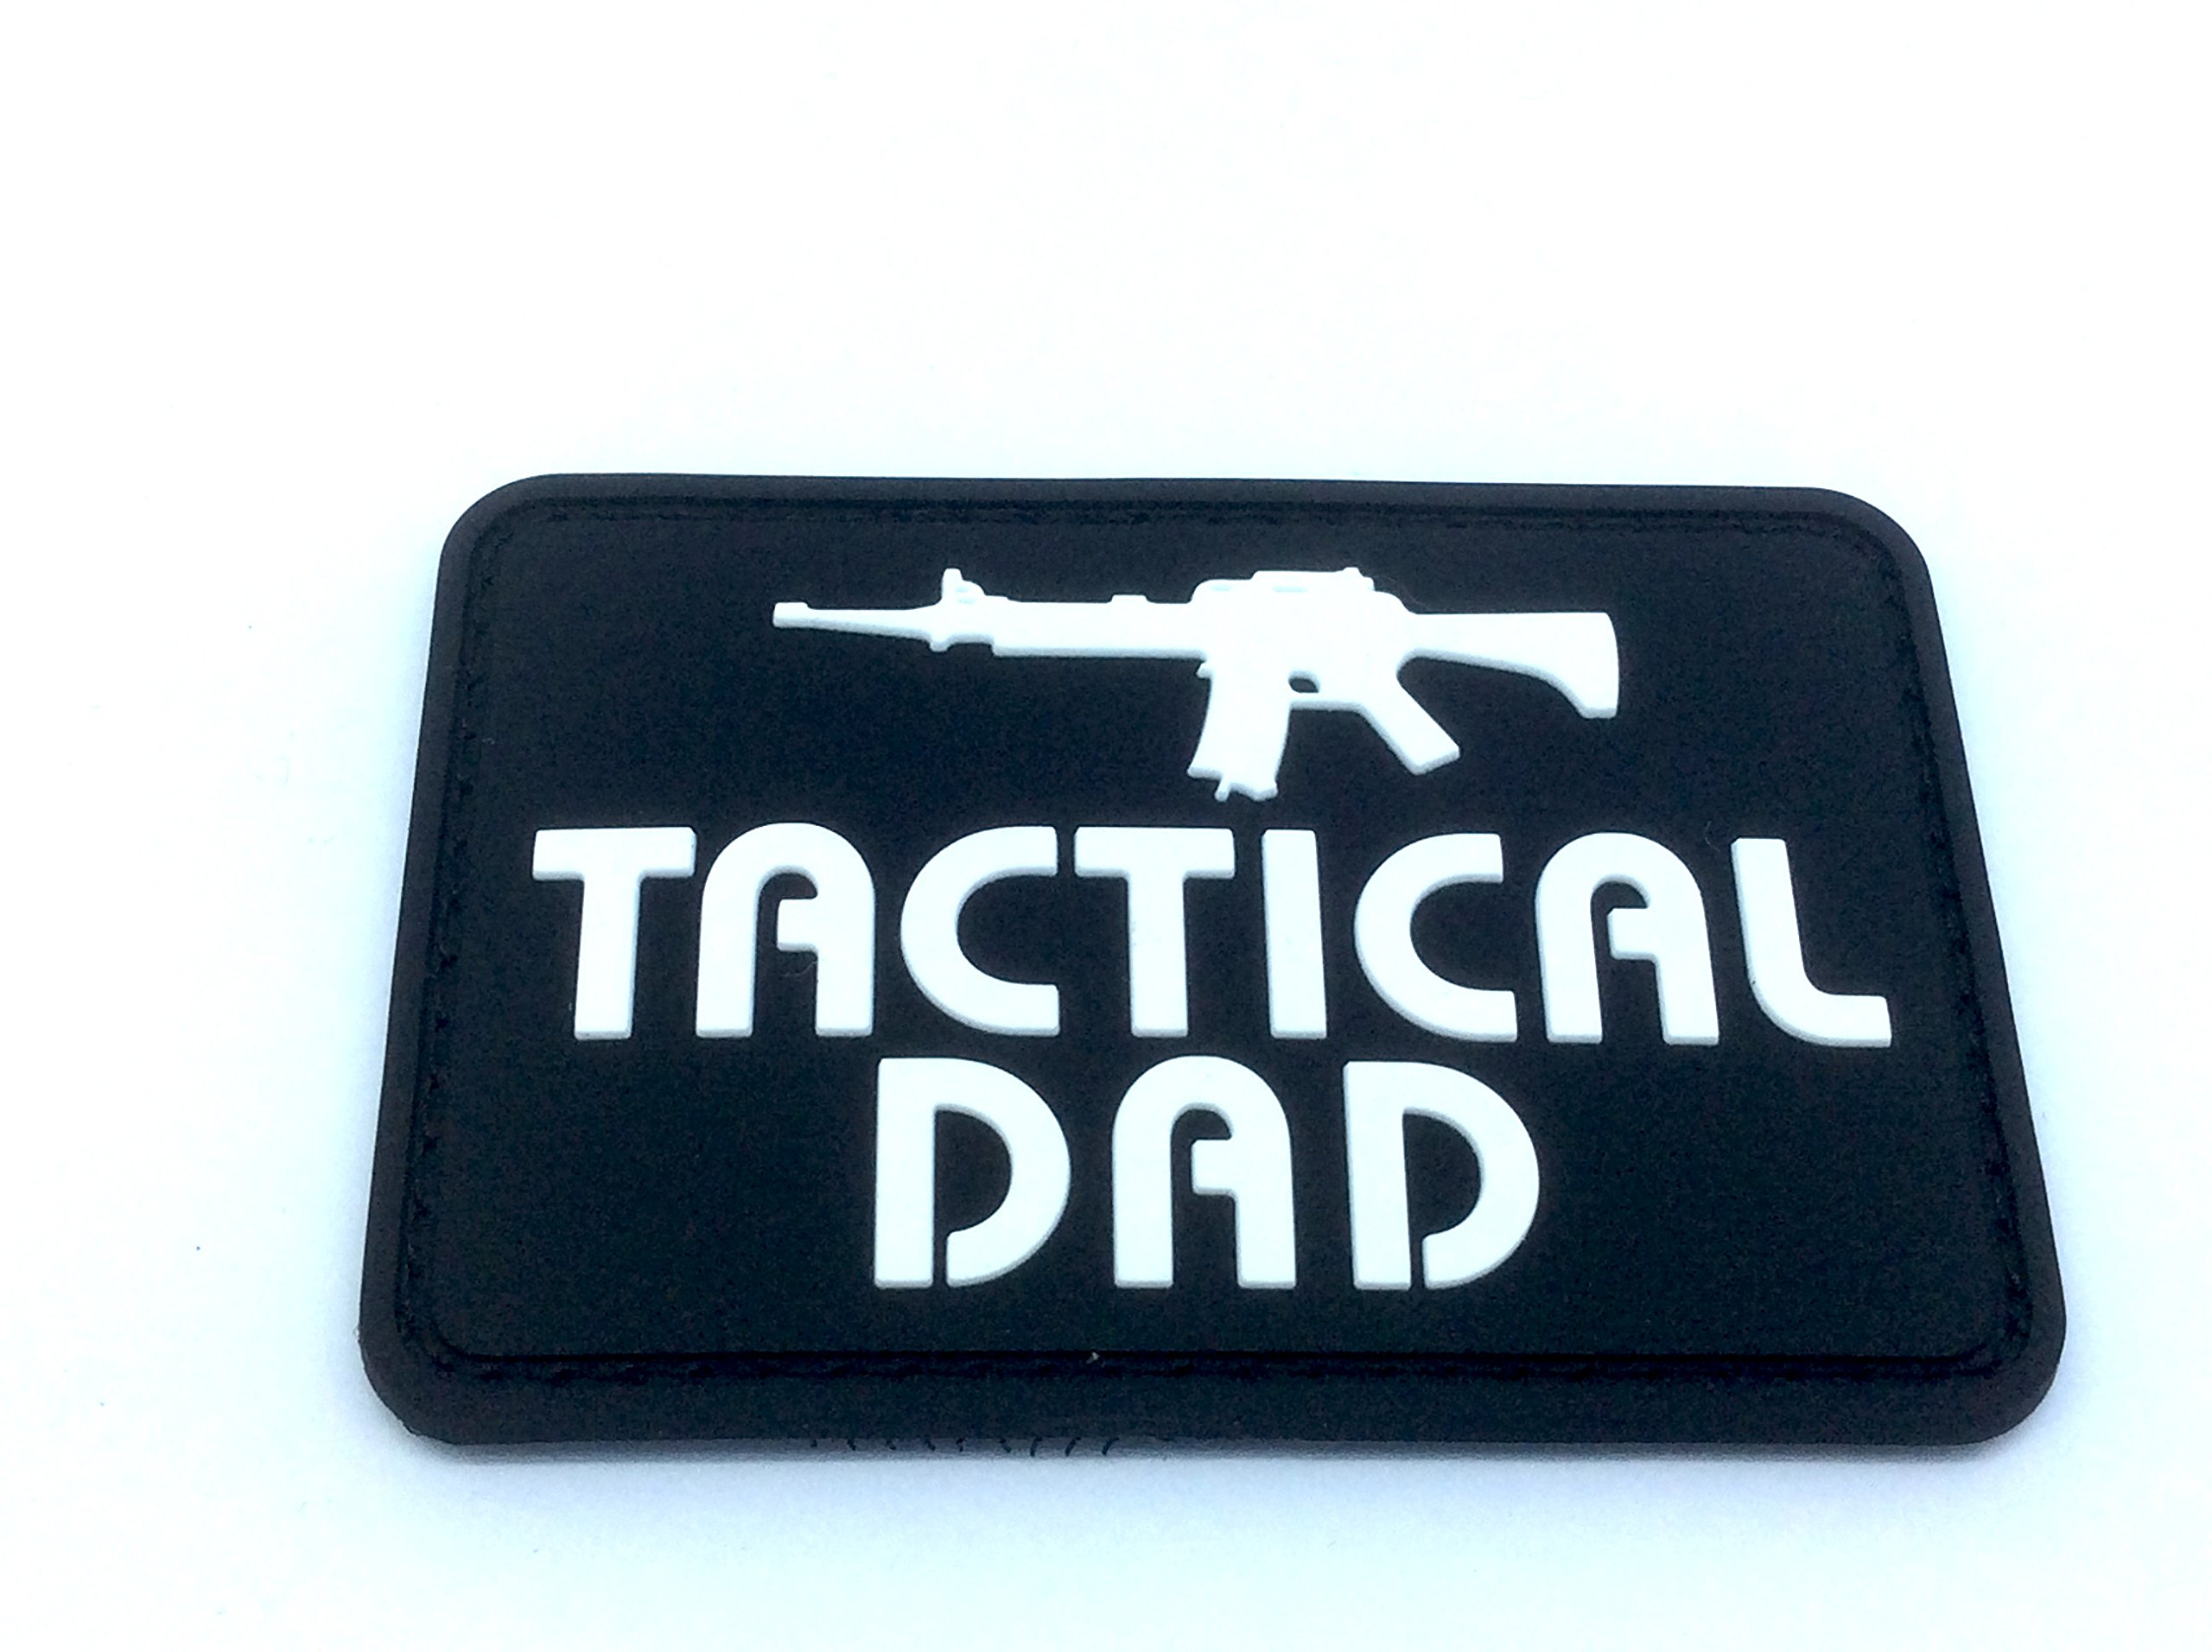 Tactical Dad negro PVC Airsoft Paintball moral parche: Amazon.es: Deportes y aire libre